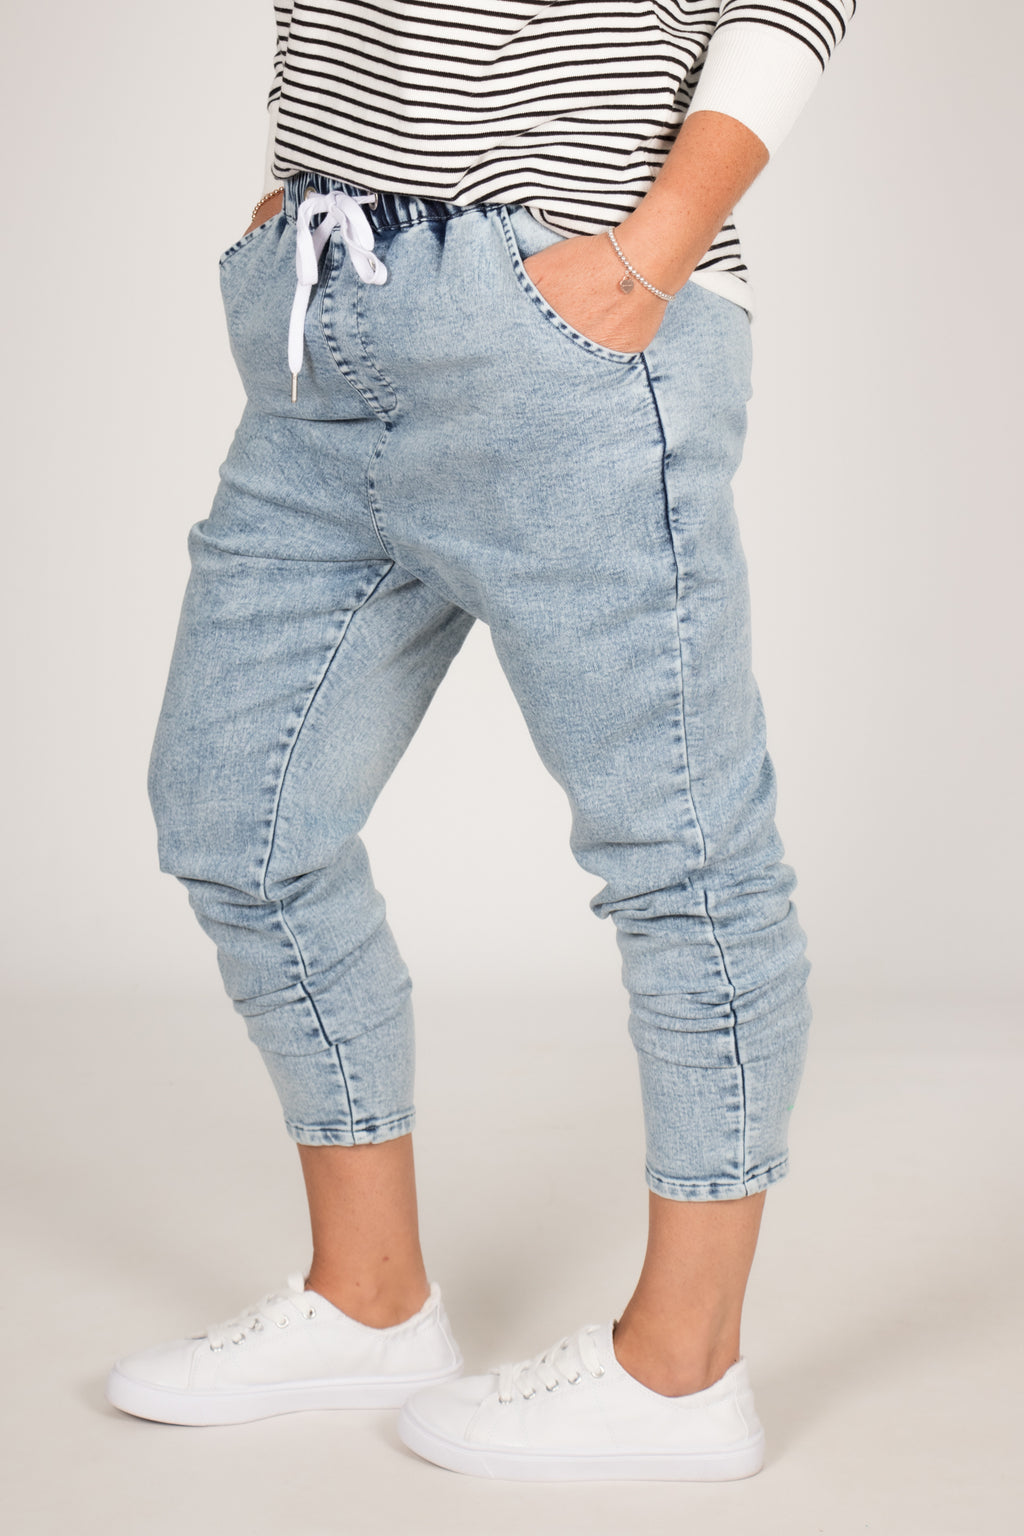 Jesse Jean in Stone Wash Blue